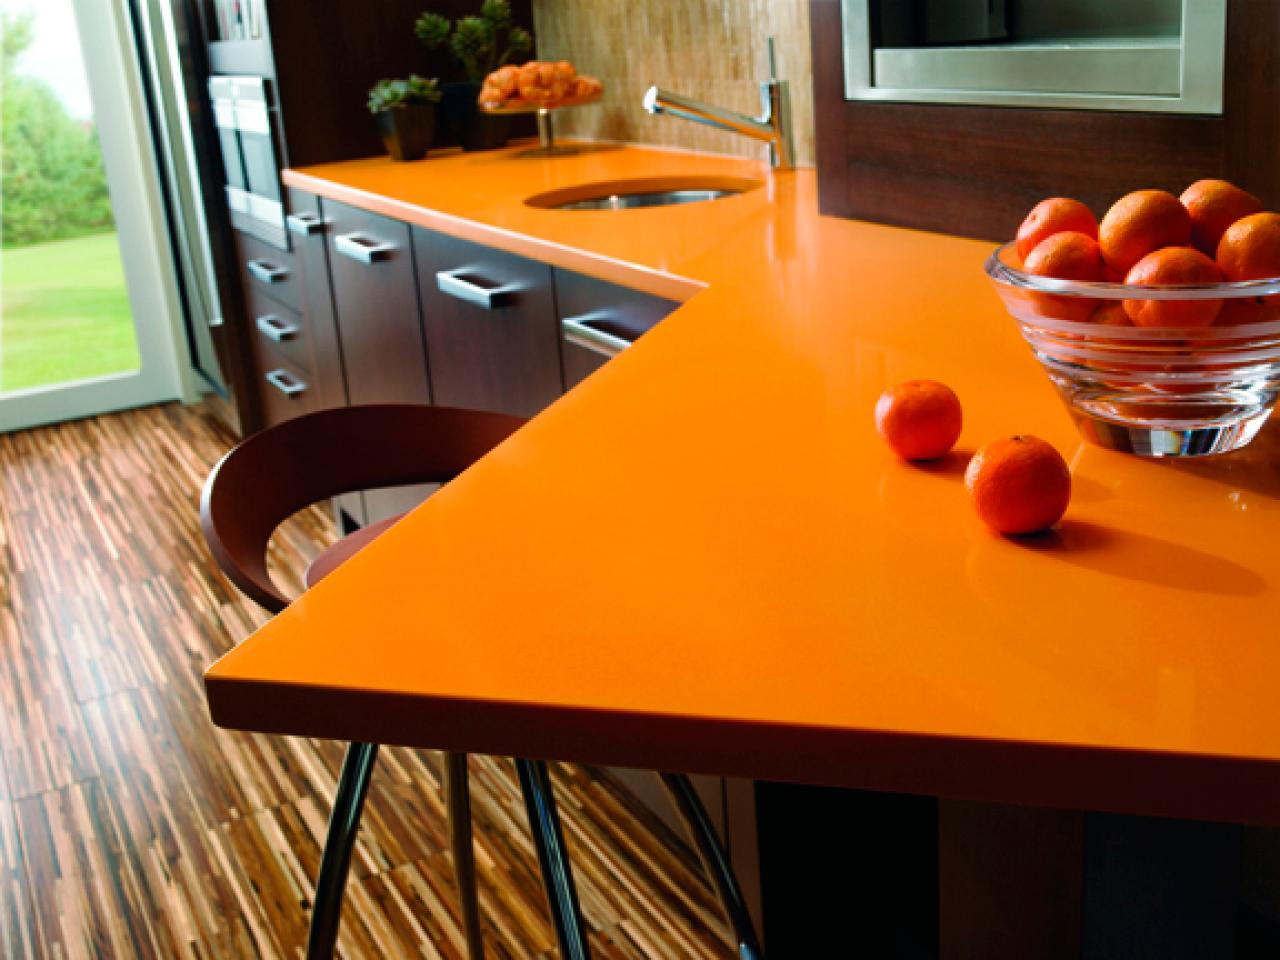 Kitchen Countertops: Kitchen Countertop Buying Guide